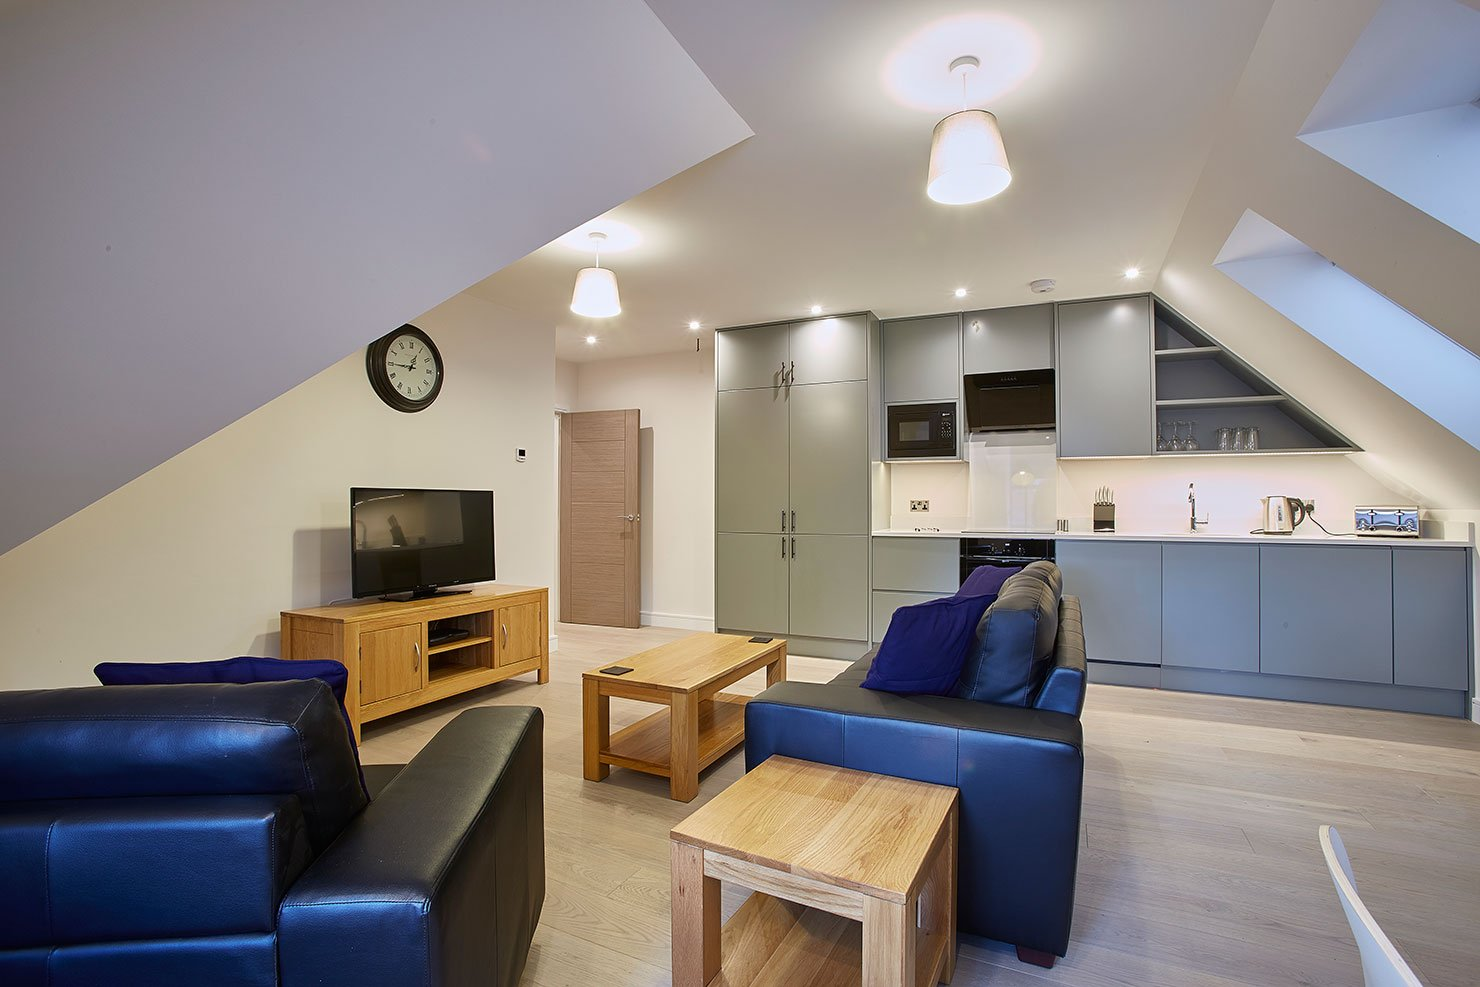 Modern-Maidenhead-Apartments---Brand-New-Serviced-Apartments-Maidenhead---Call-Urban-Stay-Today-to-Book---Free-Wi-fi---Weekly-Housekeeping-Services